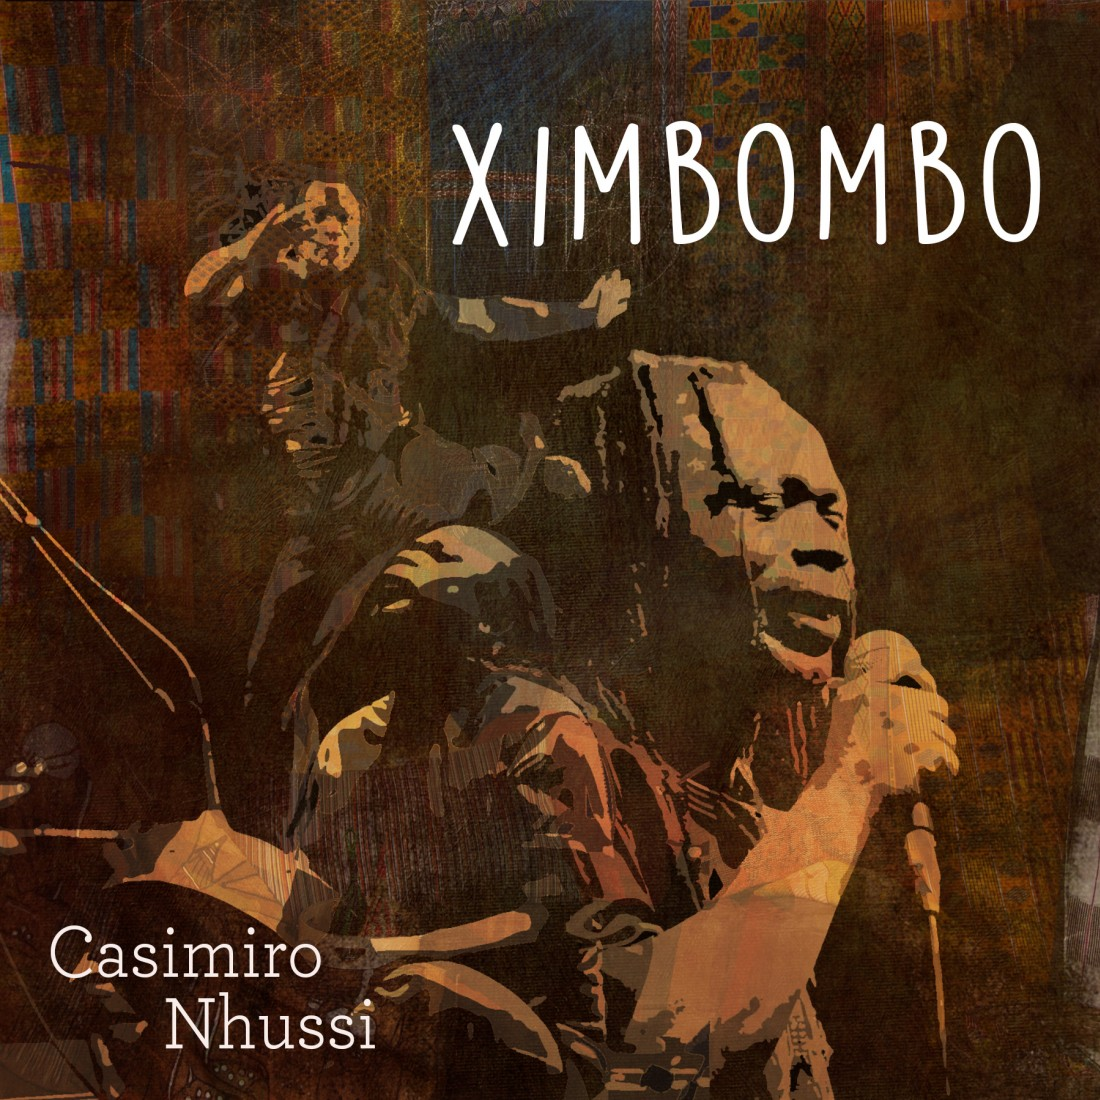 Casimiro Nhussi with NAFro Band